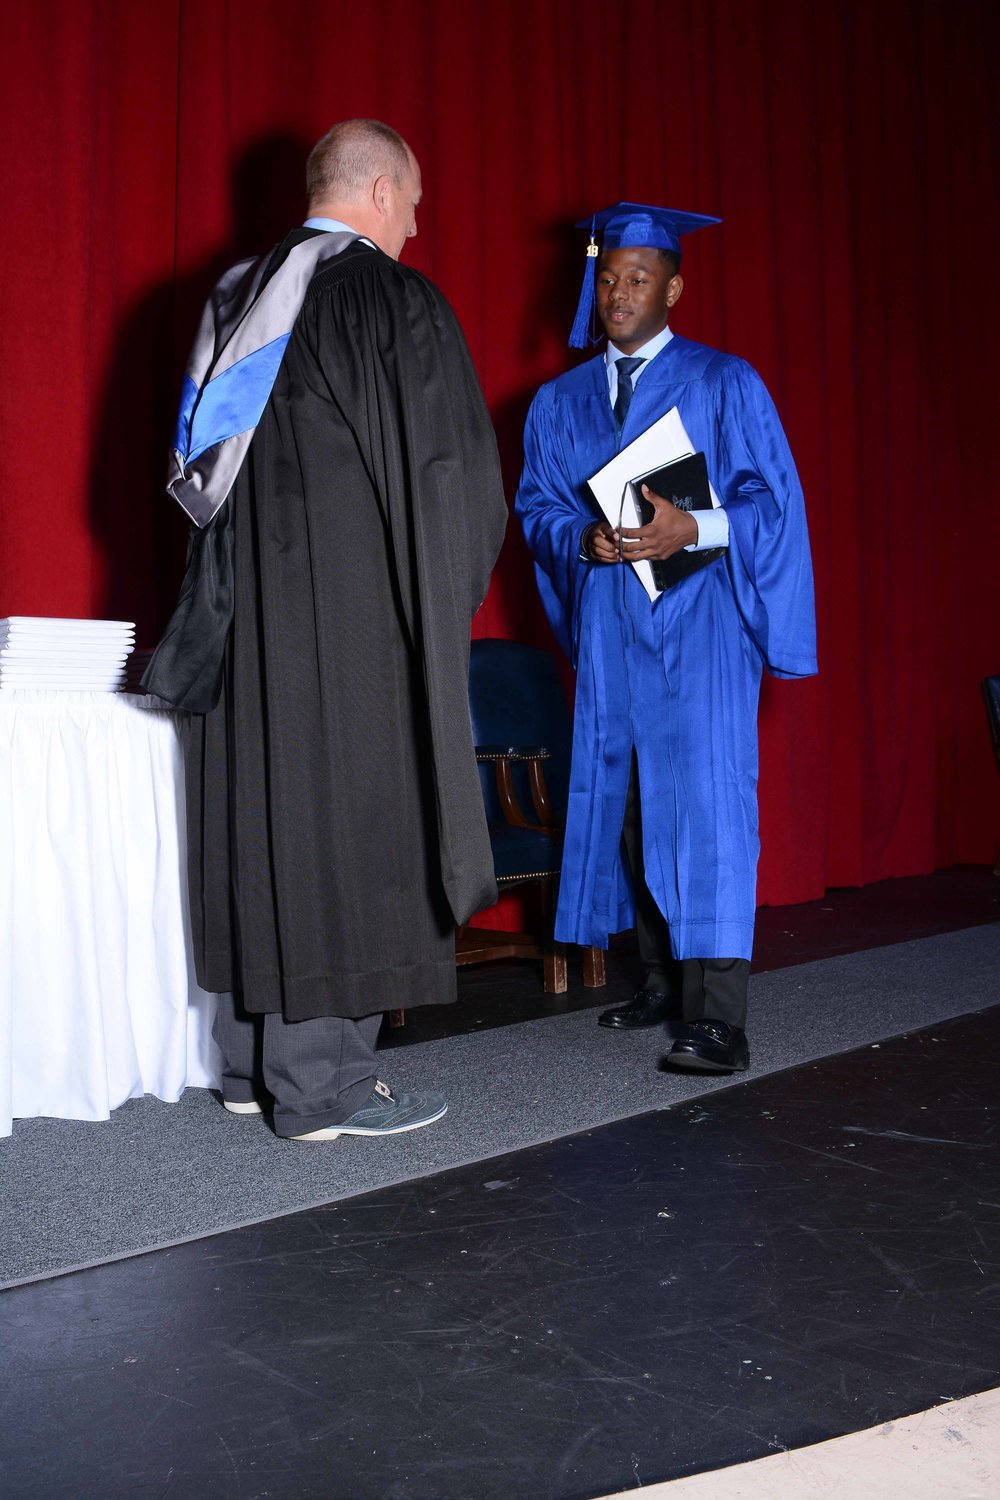 May14 Commencement87.jpg